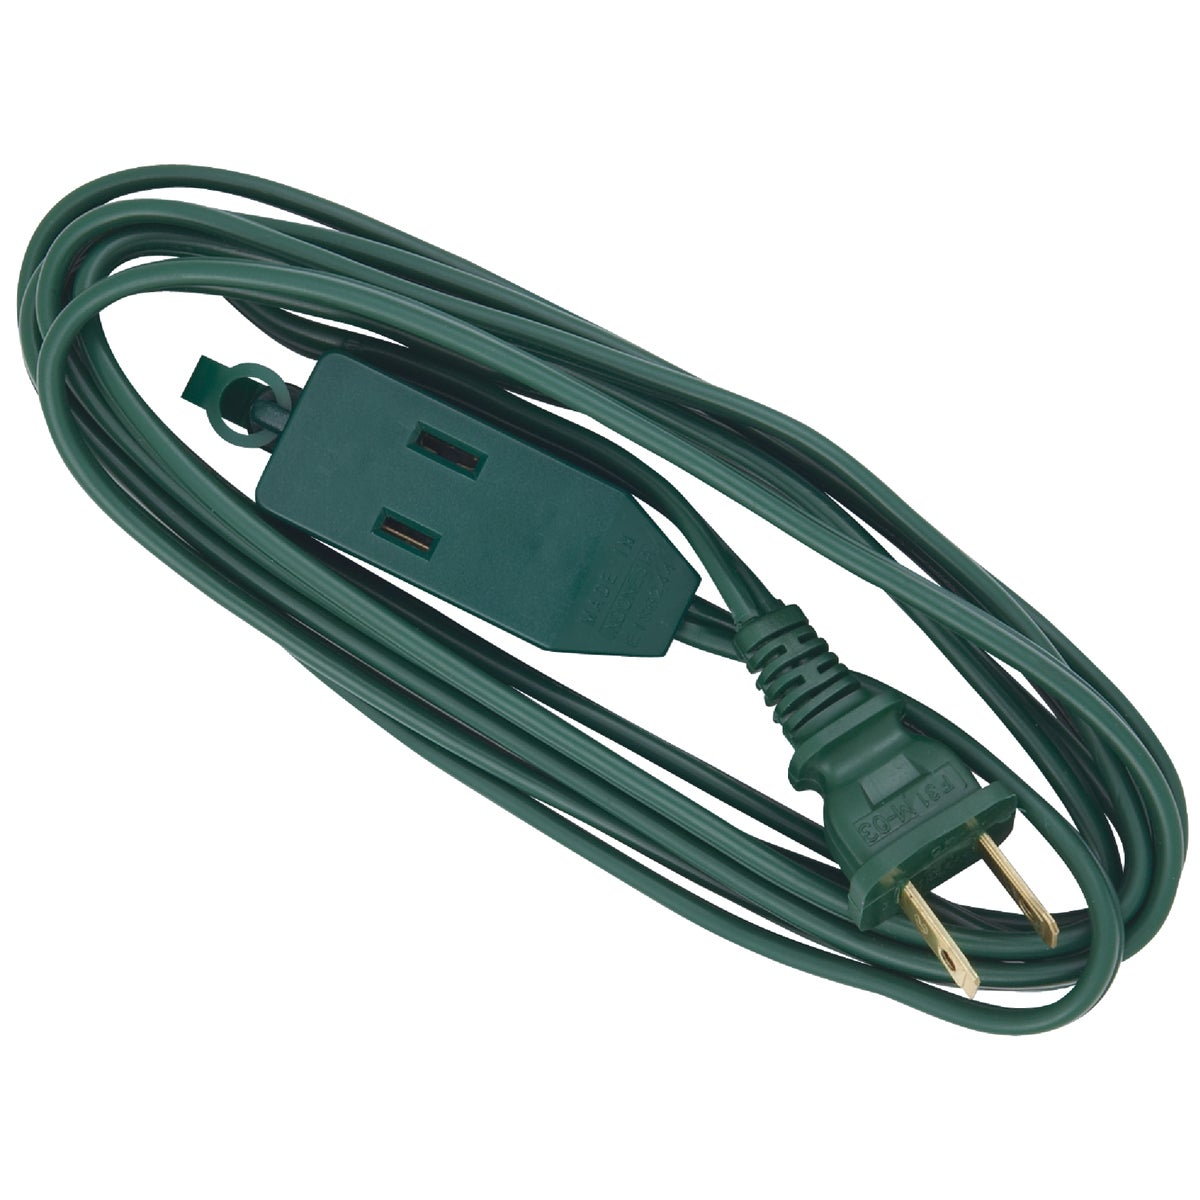 9' 16/2 GREEN EXT CORD - IN-PT2162-09X-GR by Do it Best